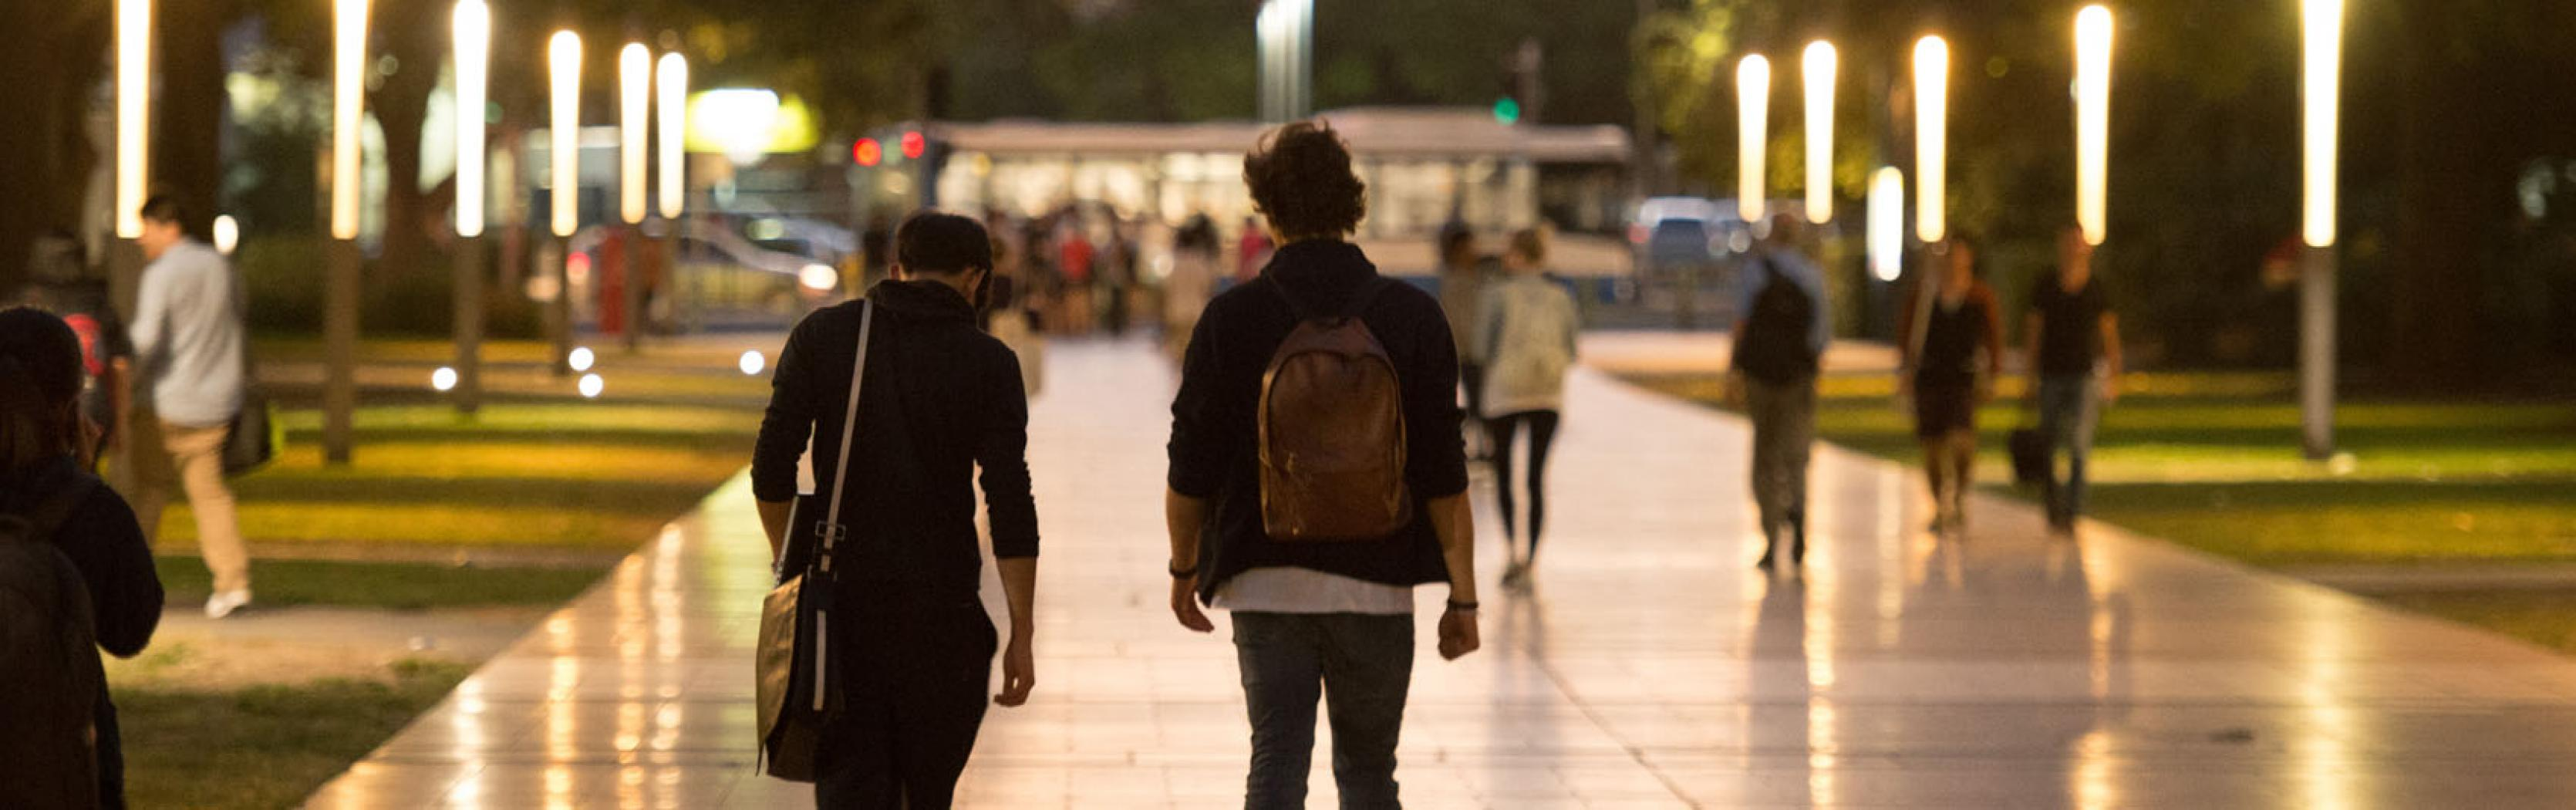 Students walking down UNSW walkway